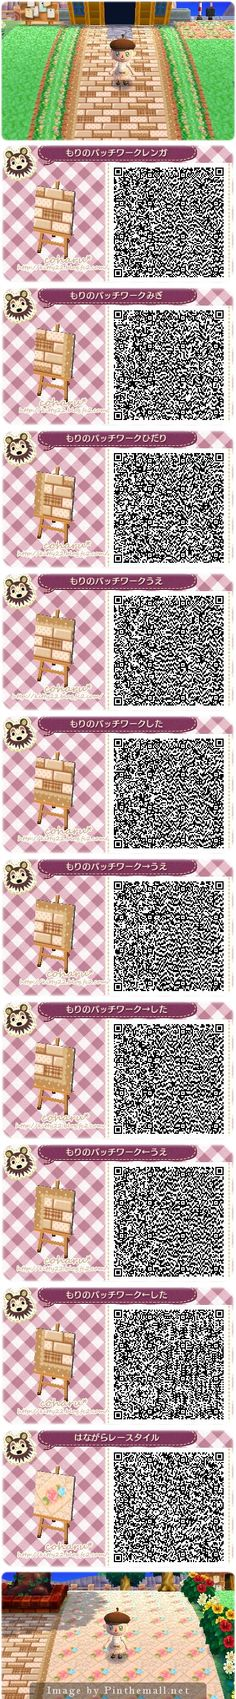 Patchwork brick pathway of the forest QR codes